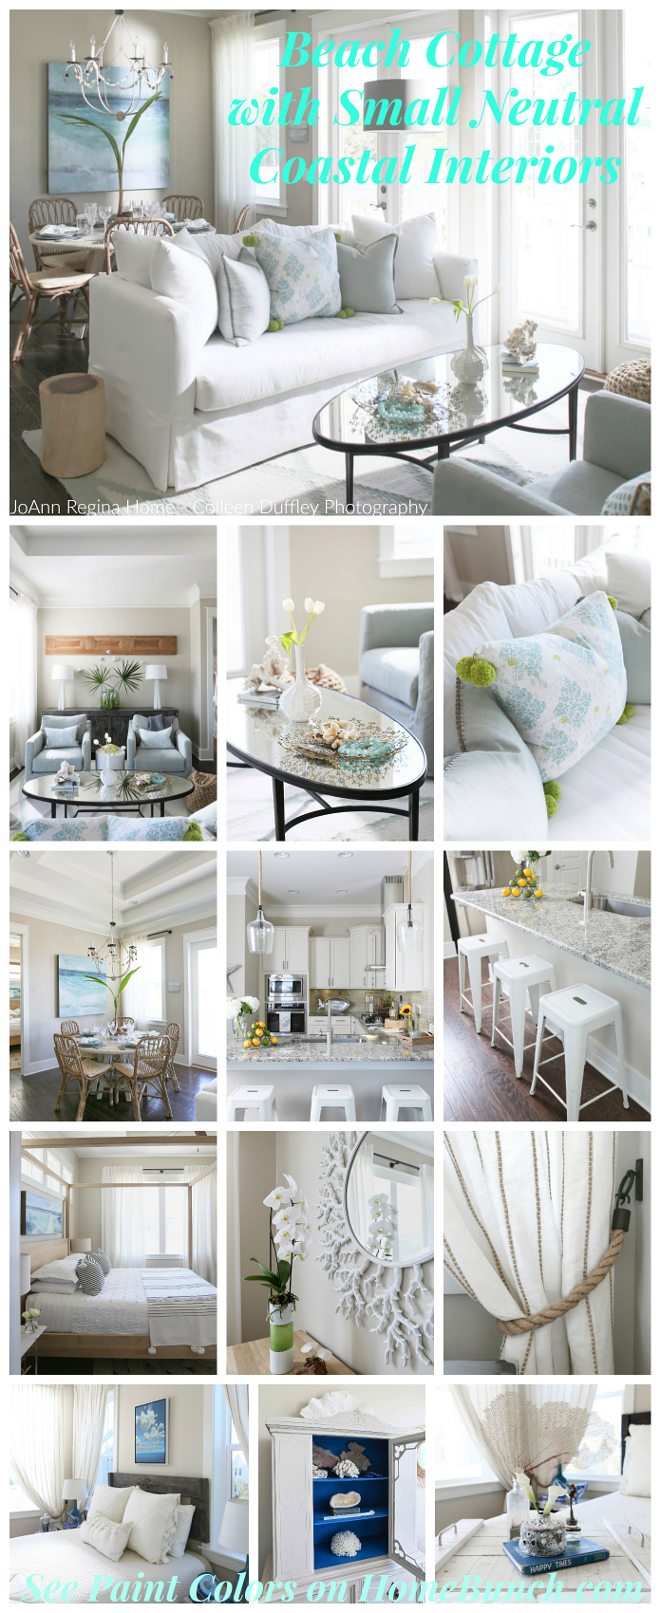 Beach Cottage with Small Neutral Coastal Interiors. Beautiful Beach Cottage with Small Neutral Coastal Interiors w/ interior designer tips. #BeachCottage #Smallinteriors #NeutralCoastalInteriors #NeutralInteriors #CoastalInteriors Home Bunch